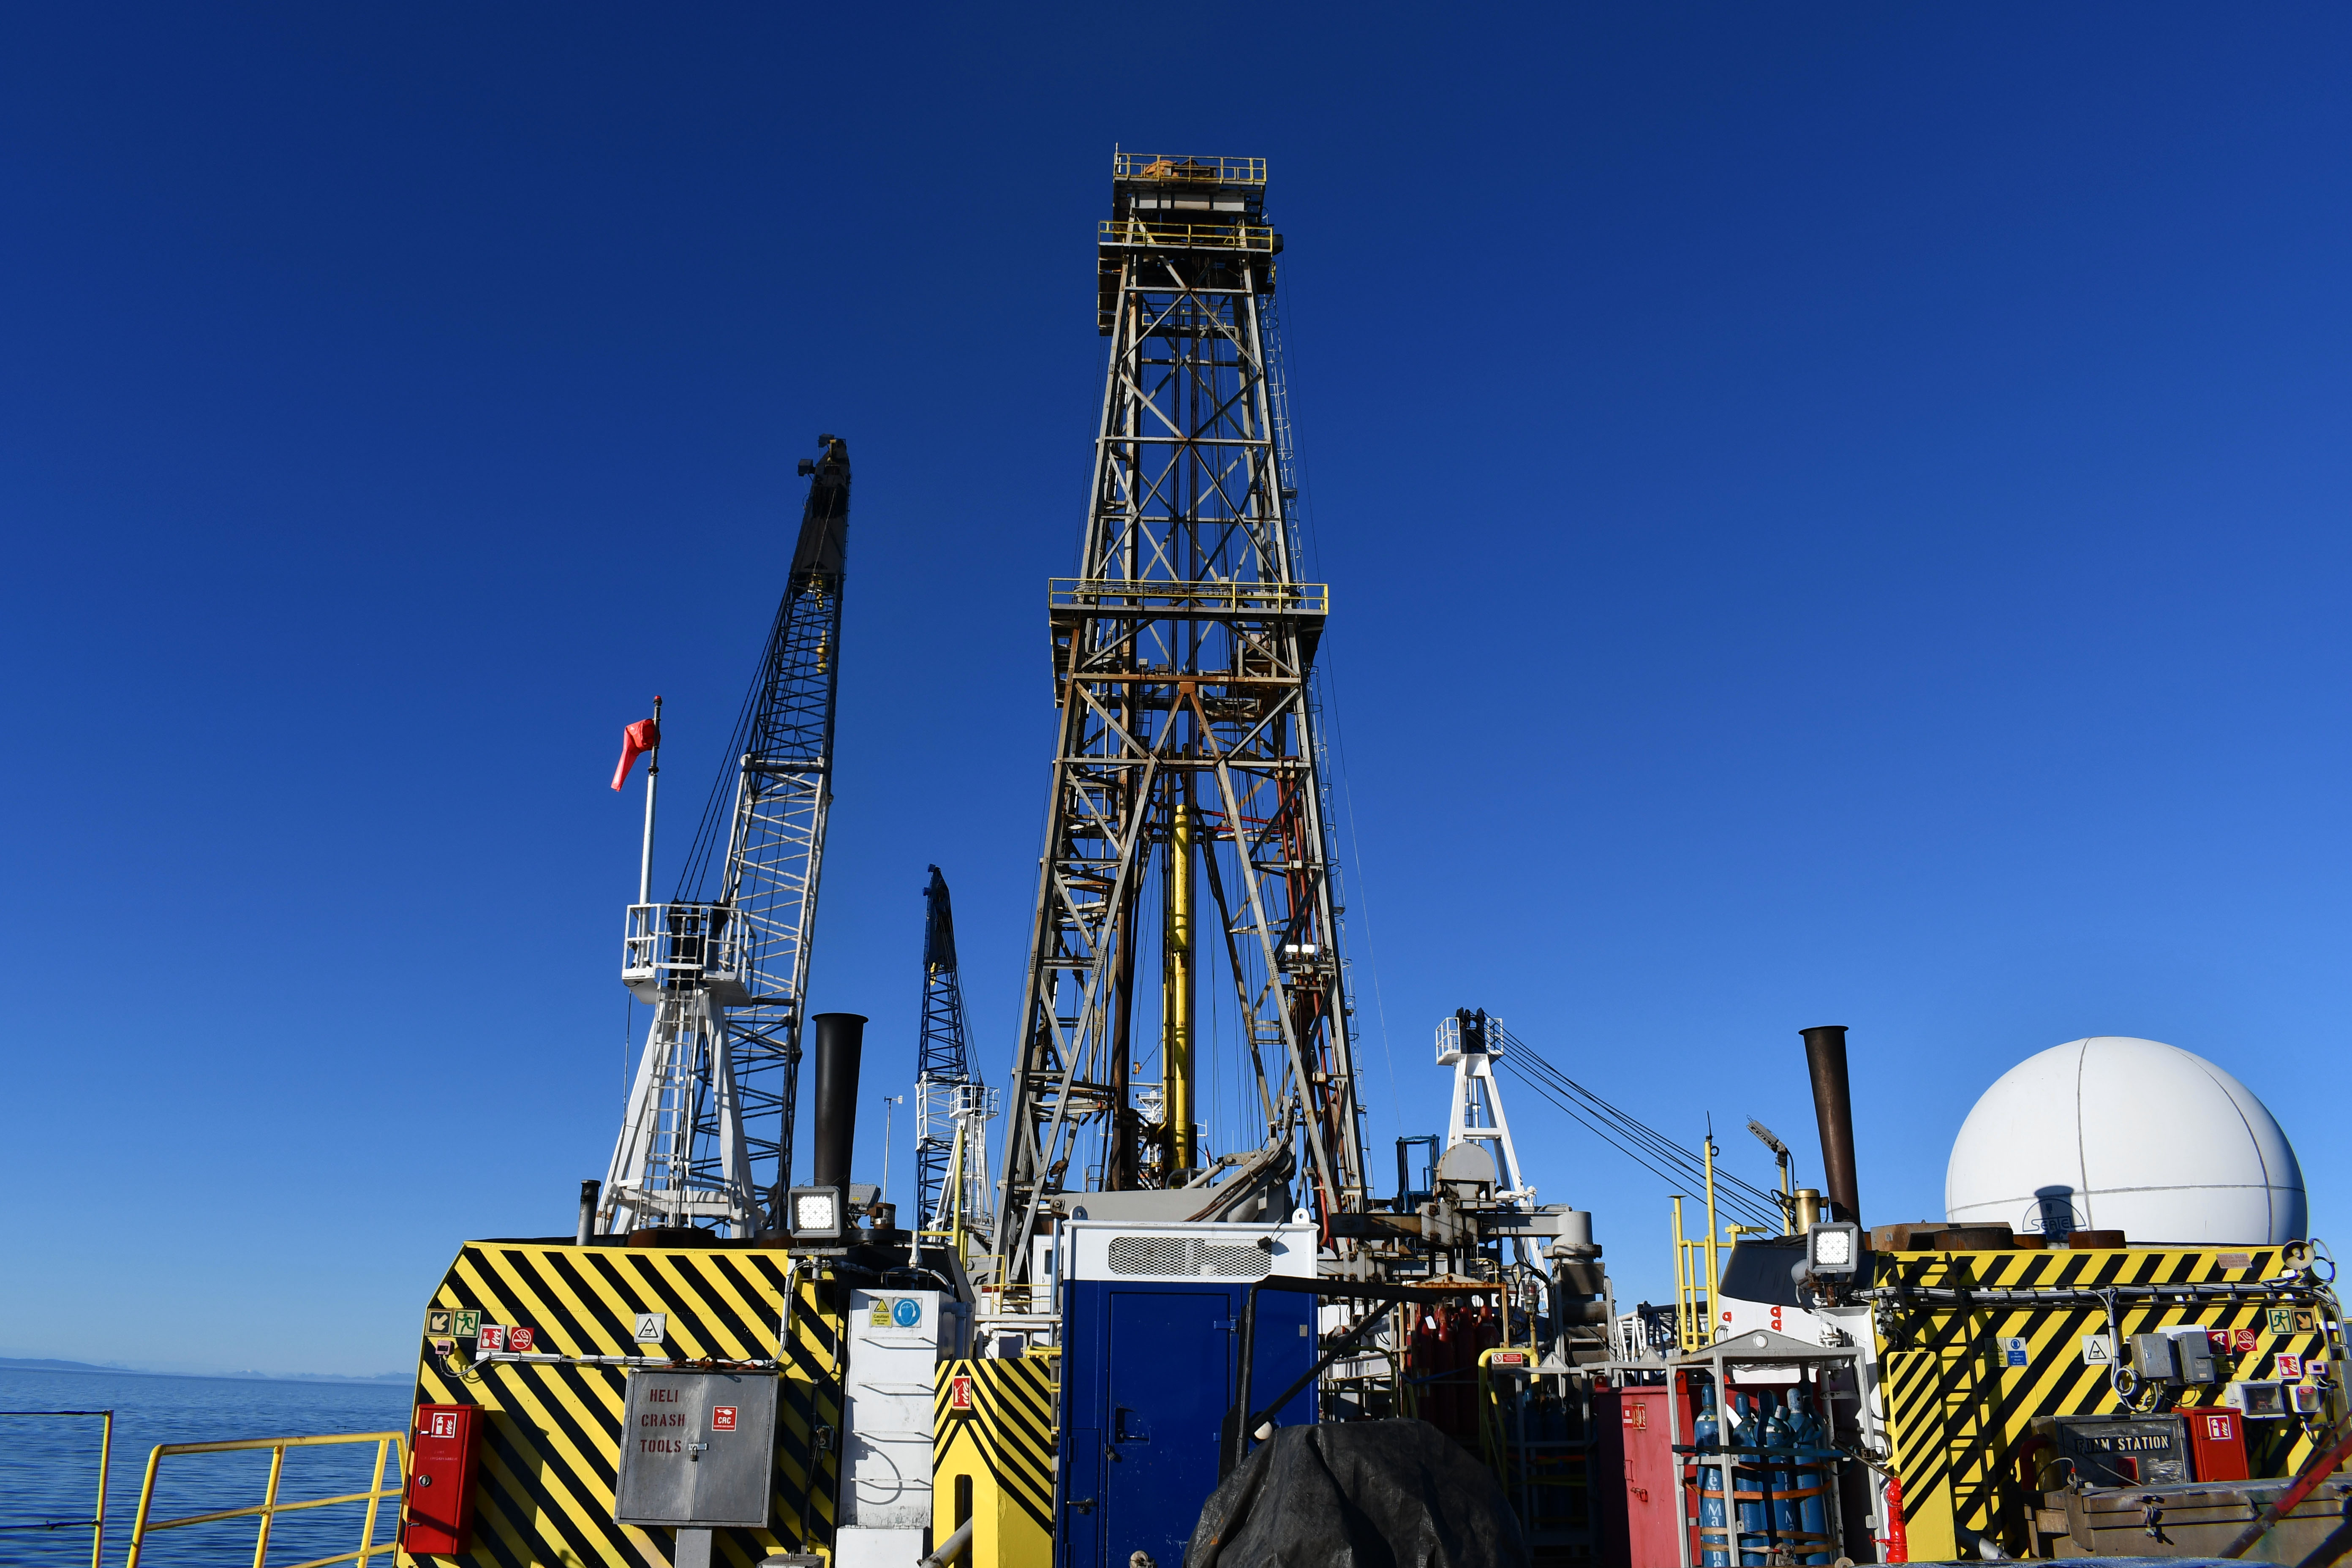 View from the ship's aft showing the towering derrick and cranes